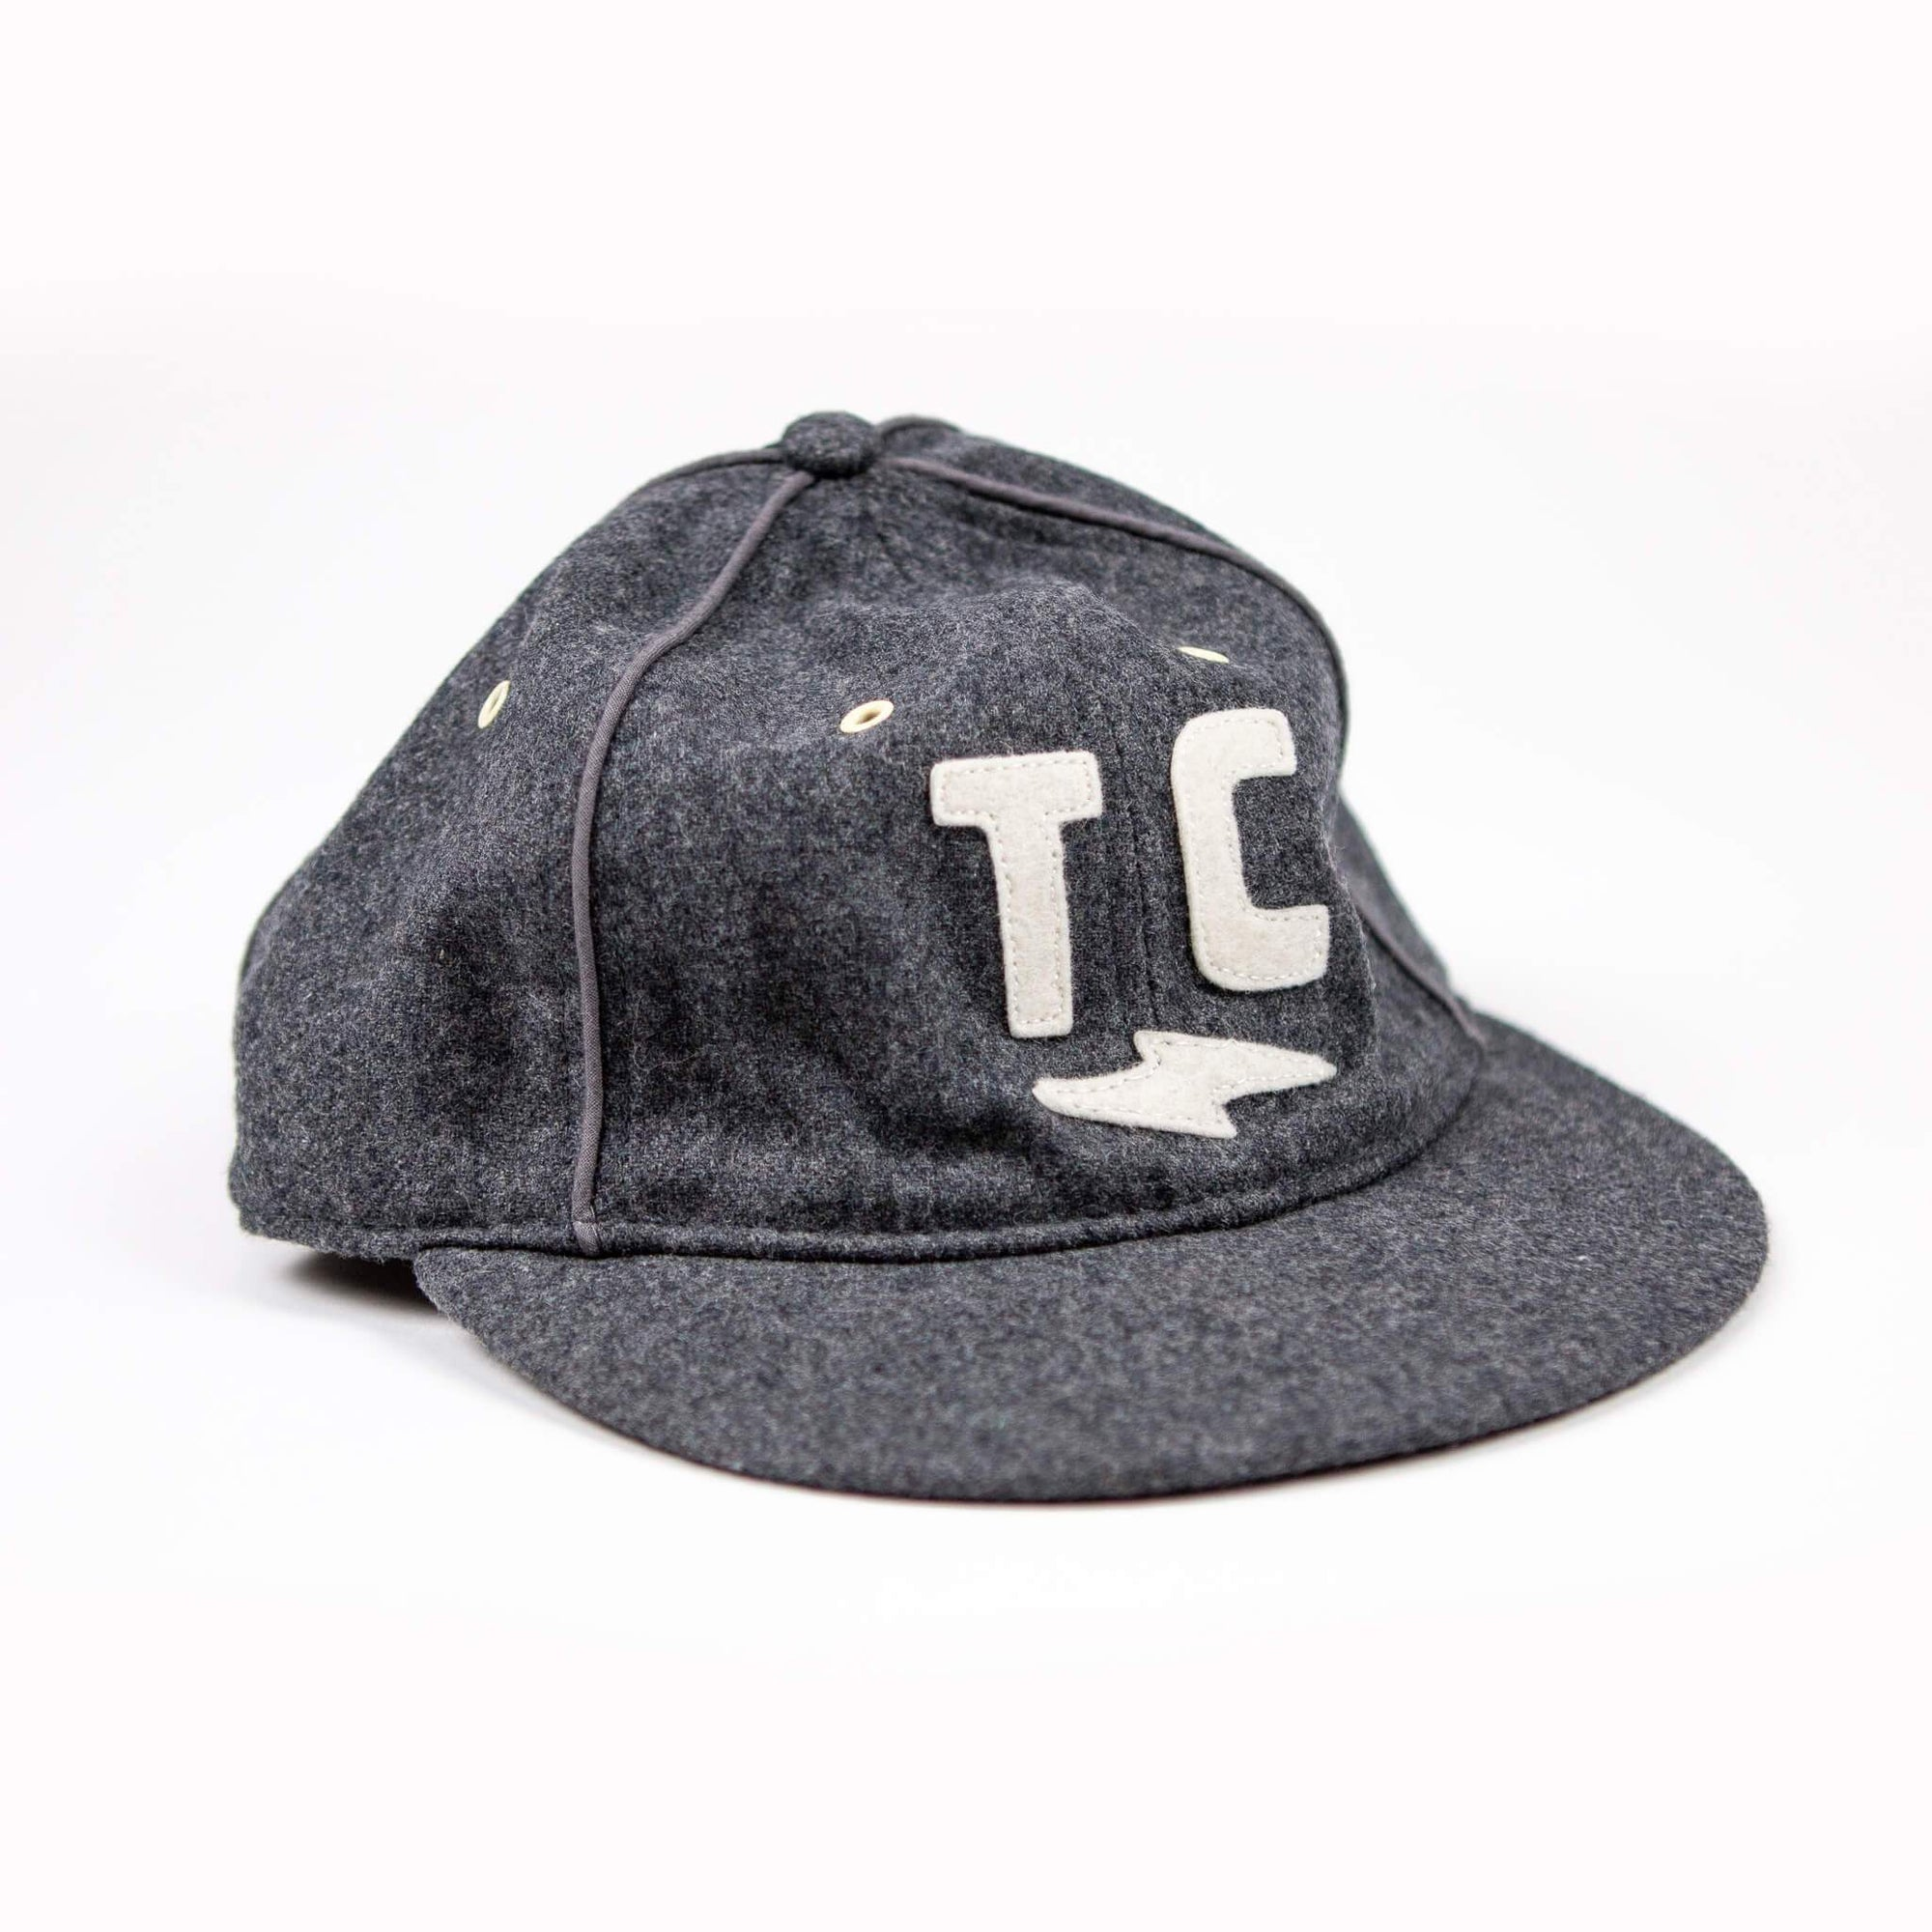 Thunder Child Baseball Cap